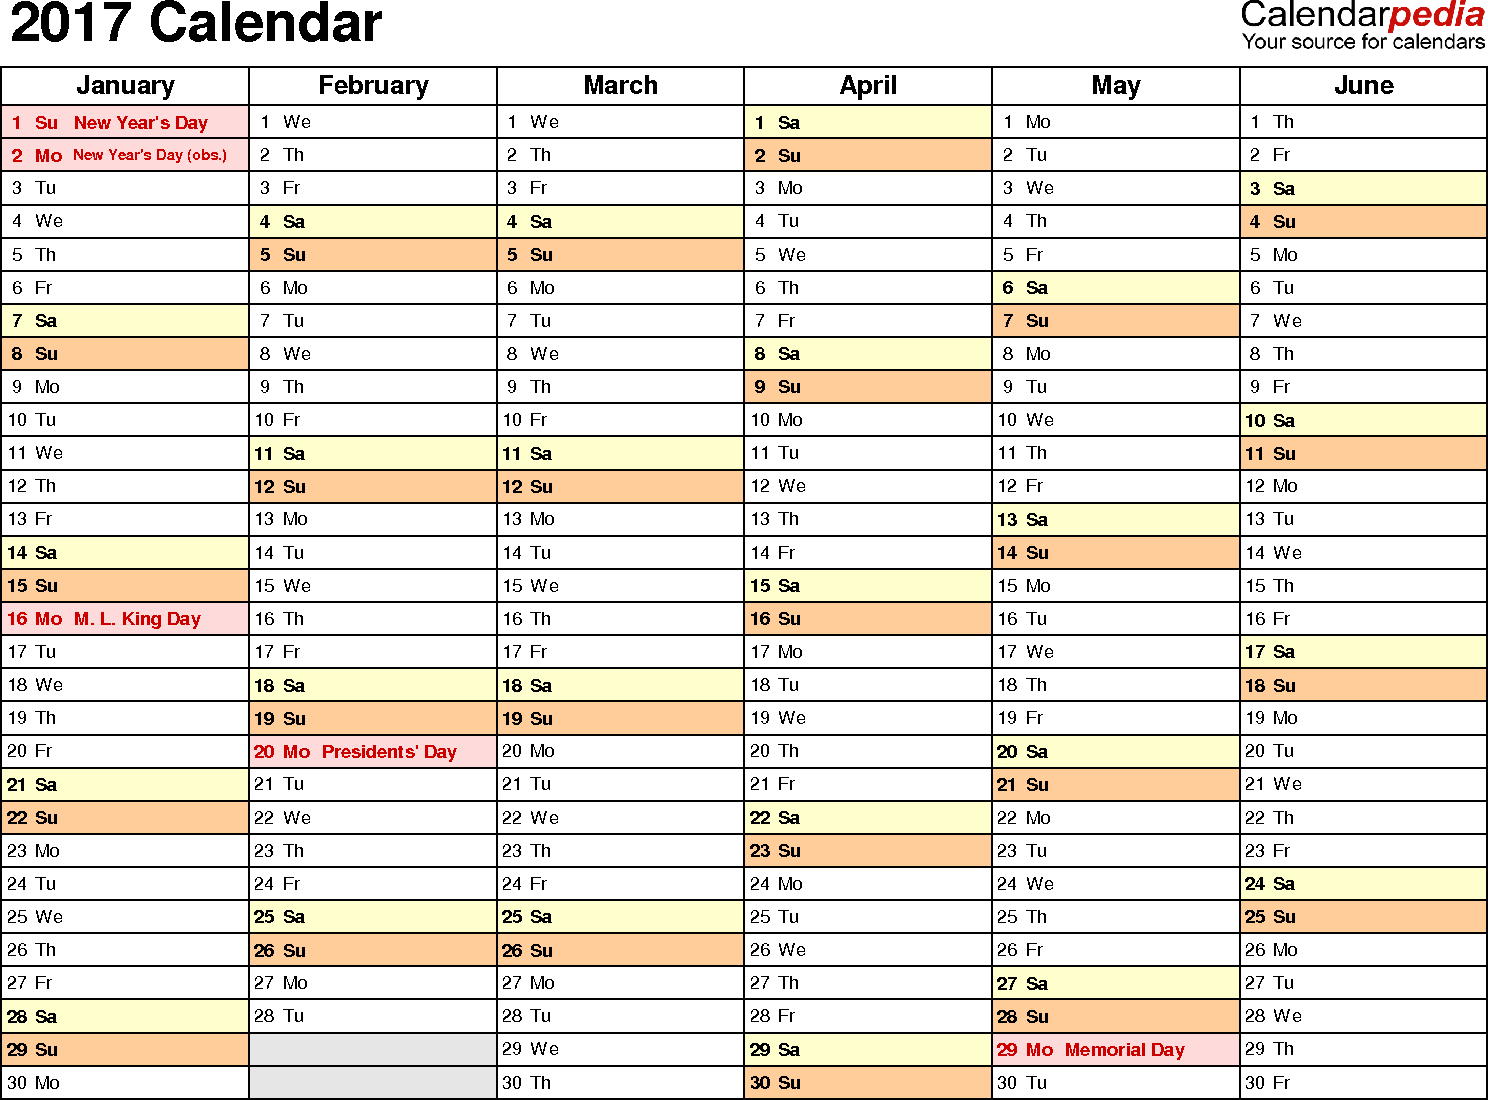 Ediblewildsus  Unusual  Calendar  Download  Free Printable Excel Templates Xls With Fascinating Template   Calendar For Excel Months Horizontally  Pages Landscape Orientation With Charming Decile Excel Also Excel Text Wrapping In Addition Standard Curve In Excel And Project Implementation Plan Template Excel As Well As Cross Correlation Excel Additionally Plot Standard Deviation In Excel From Calendarpediacom With Ediblewildsus  Fascinating  Calendar  Download  Free Printable Excel Templates Xls With Charming Template   Calendar For Excel Months Horizontally  Pages Landscape Orientation And Unusual Decile Excel Also Excel Text Wrapping In Addition Standard Curve In Excel From Calendarpediacom